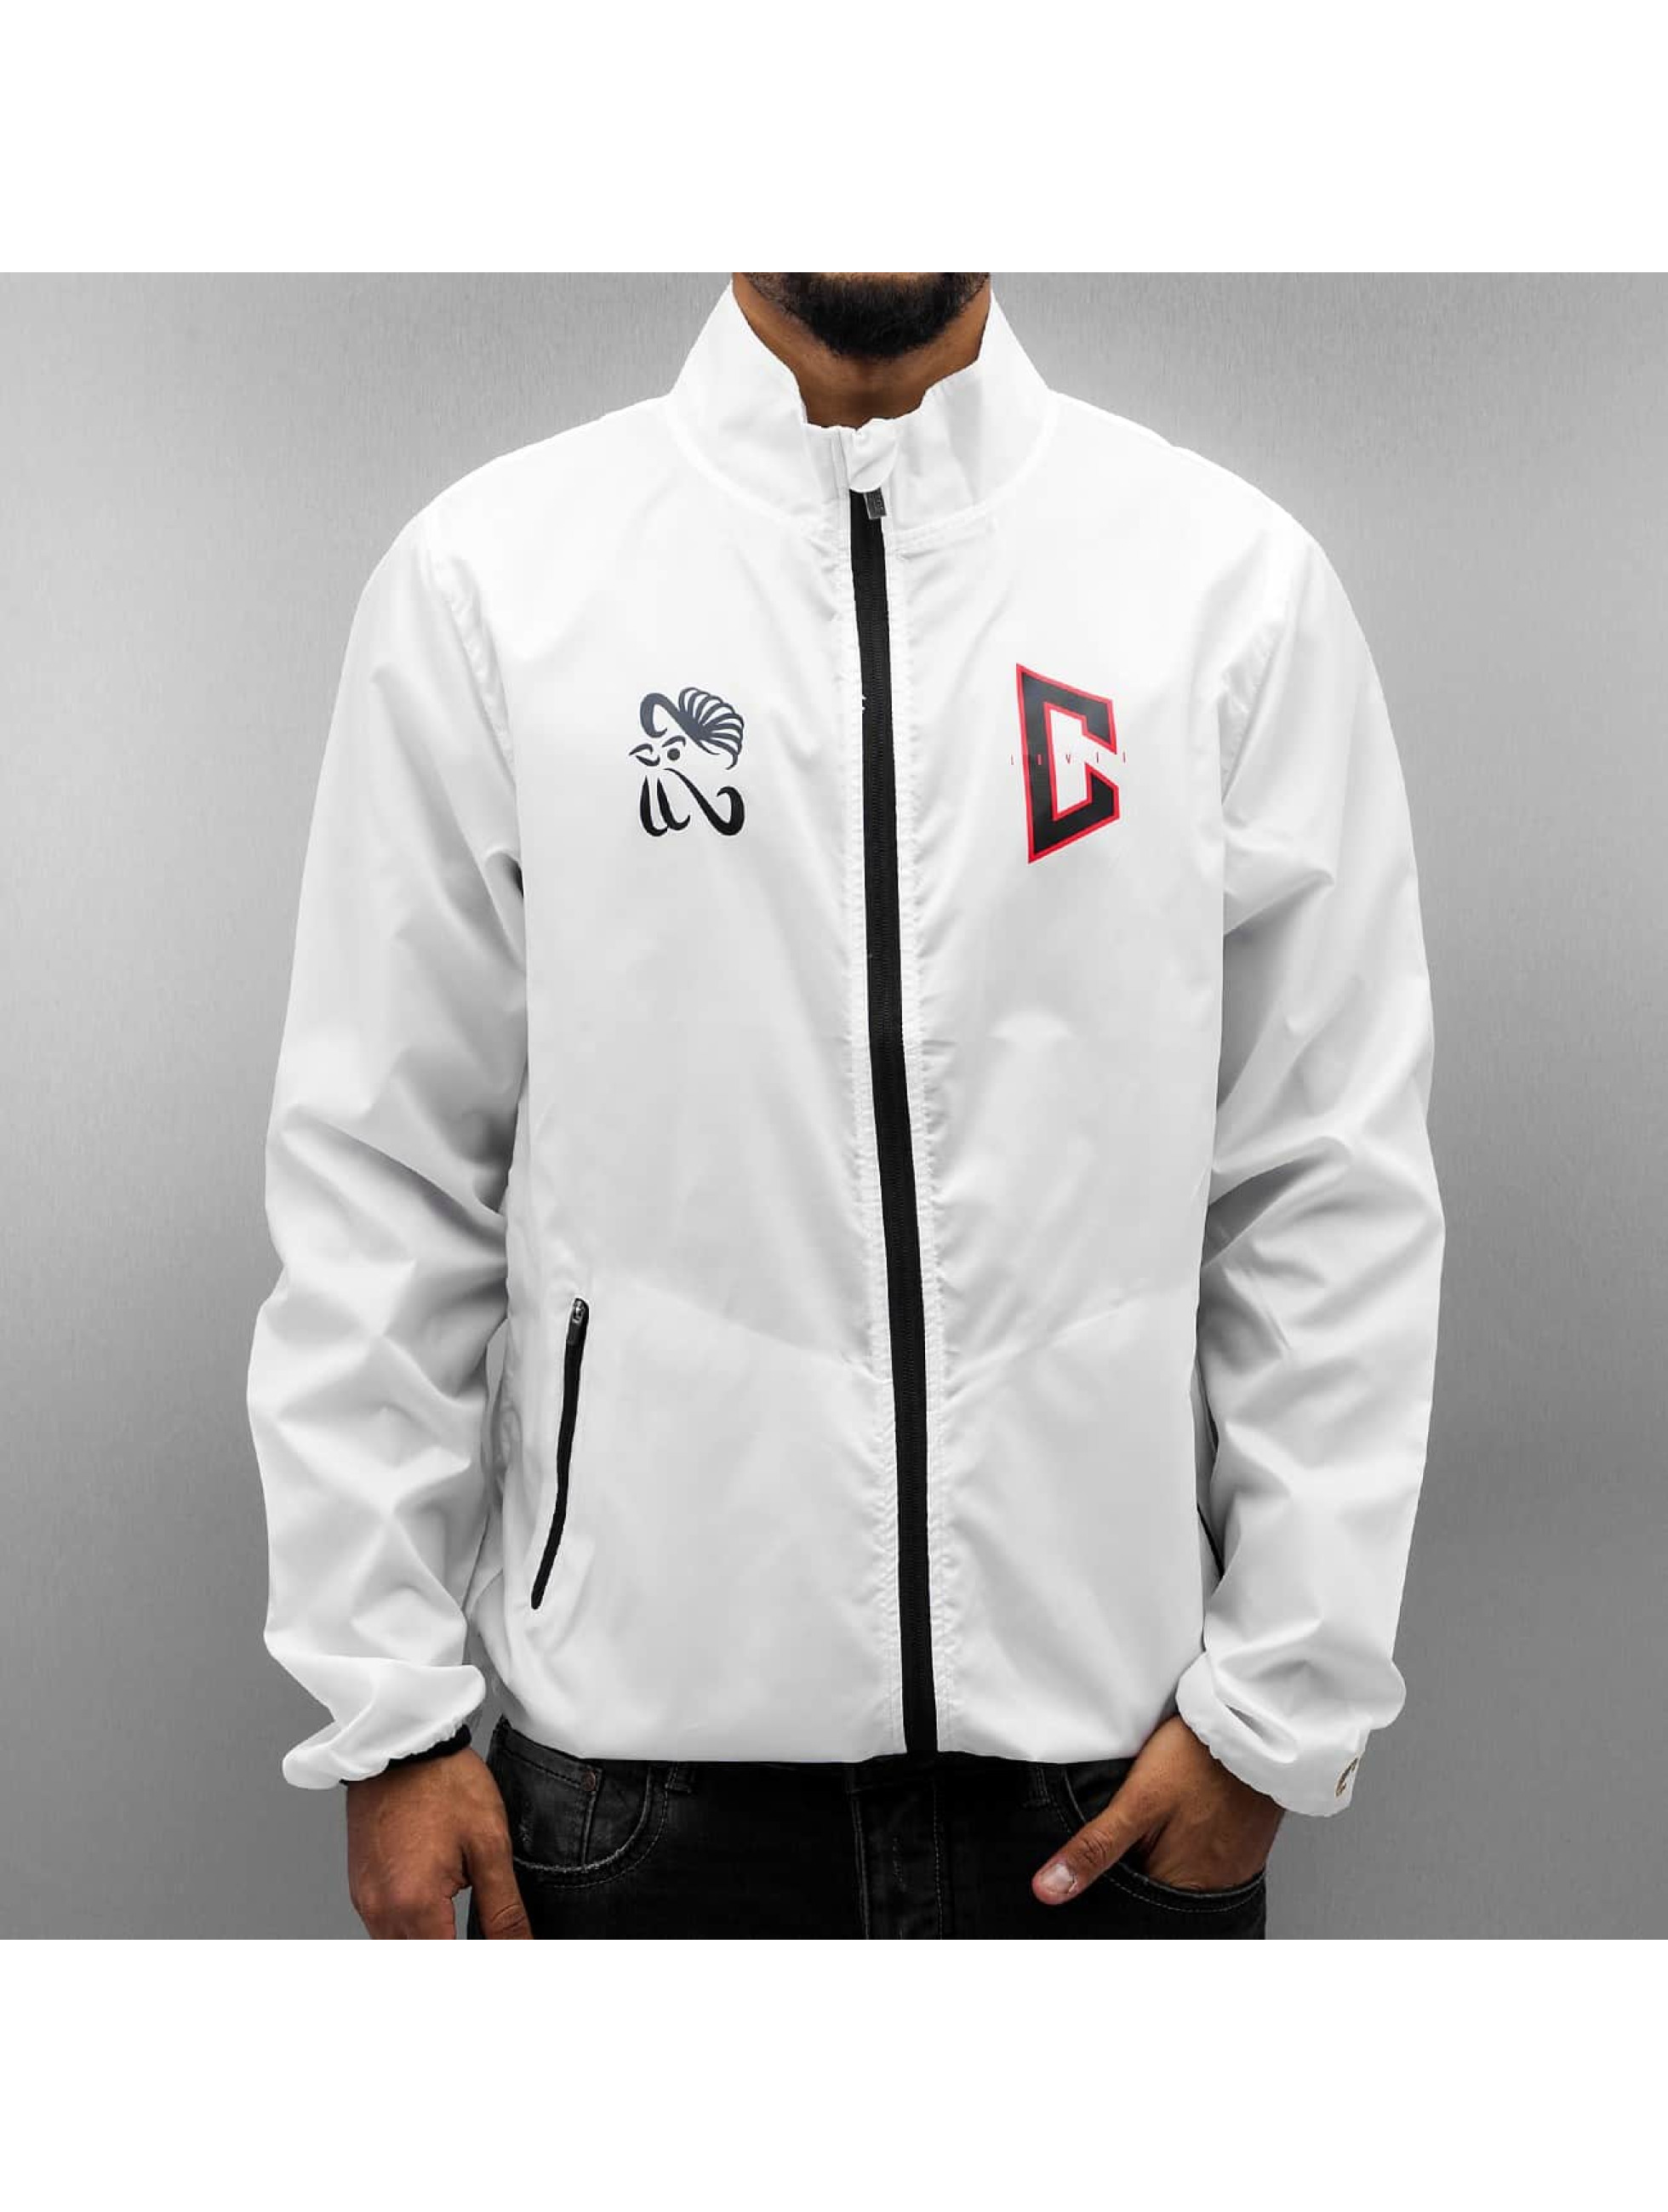 CHABOS IIVII Lightweight Jacket Athletics Lightweight white